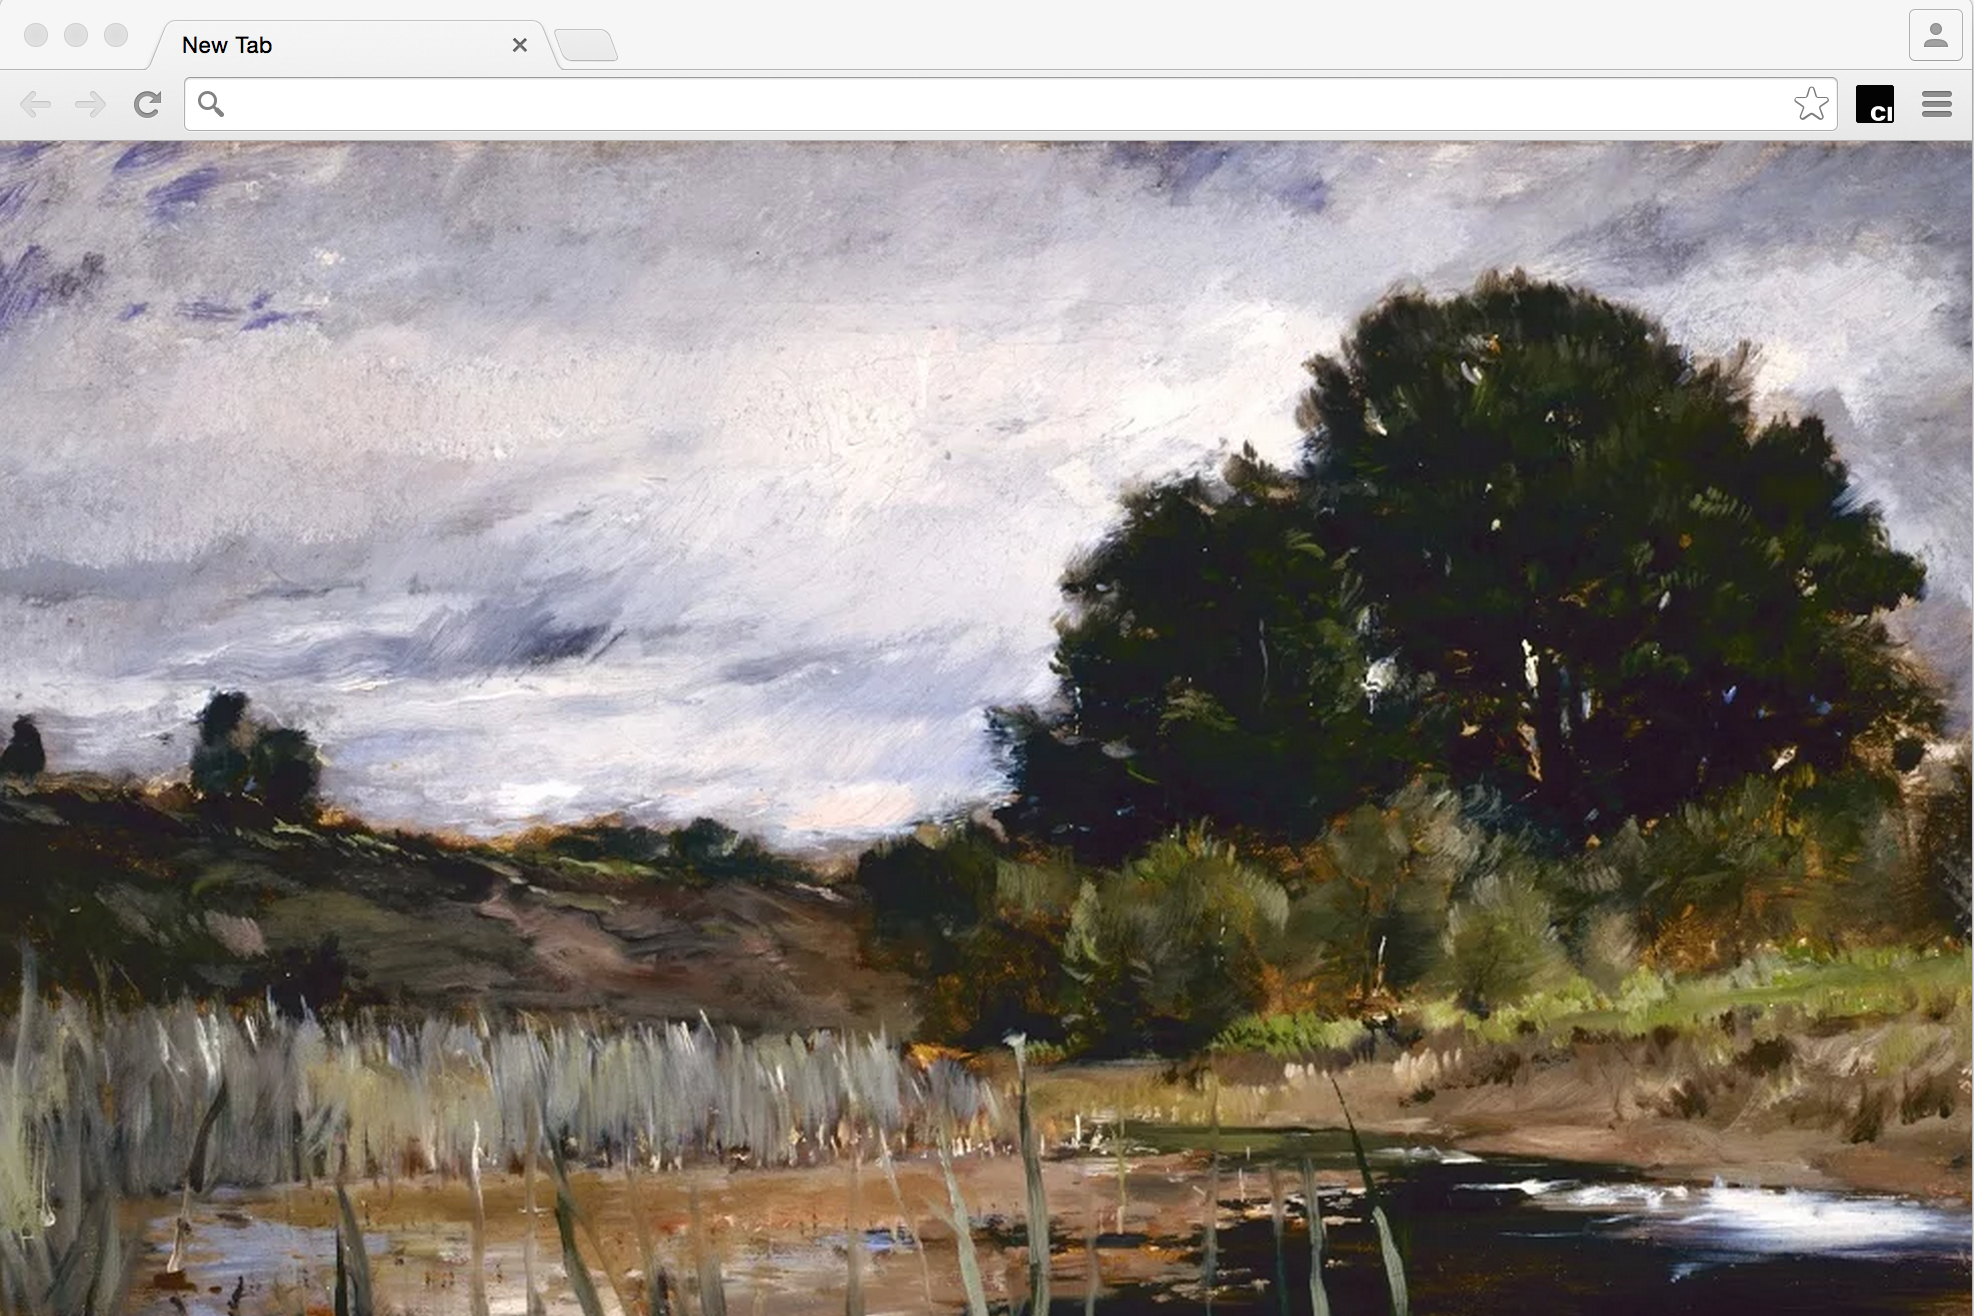 Google releases Chrome extension that replaces blank tabs with works of art